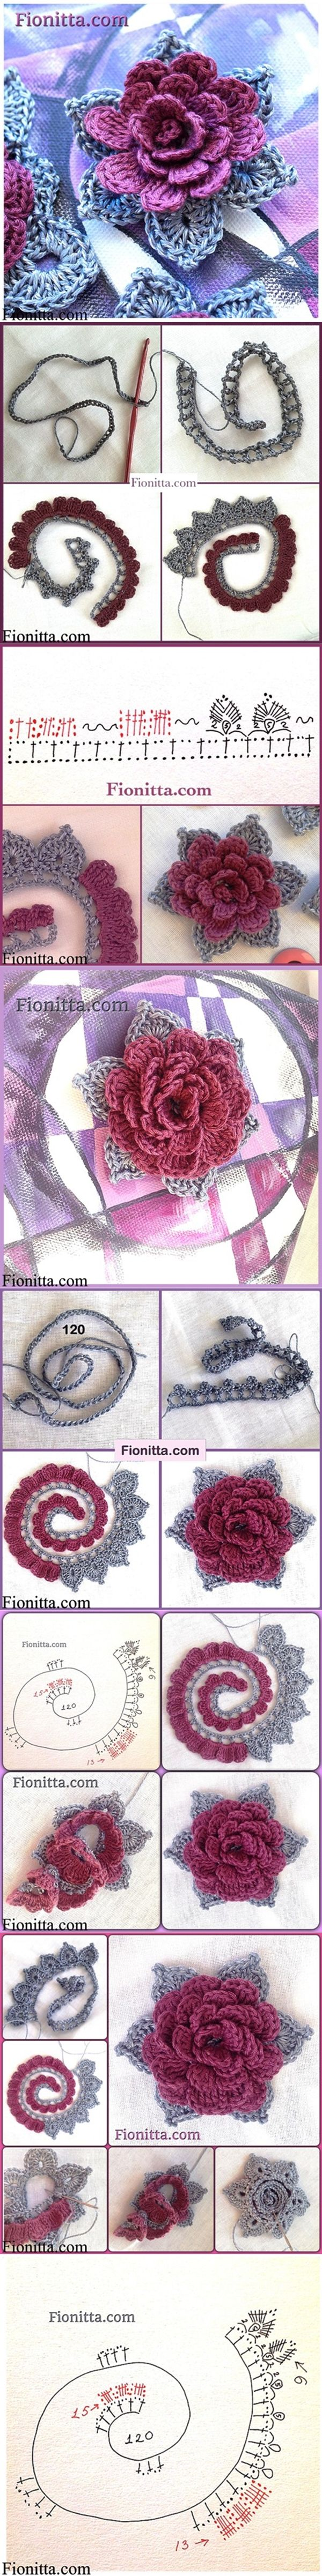 DIY 3D Crochet Rose in 3 Ways | www.FabArtDIY.com LIKE Us on Facebook ==> https://www.facebook.com/FabArtDIY